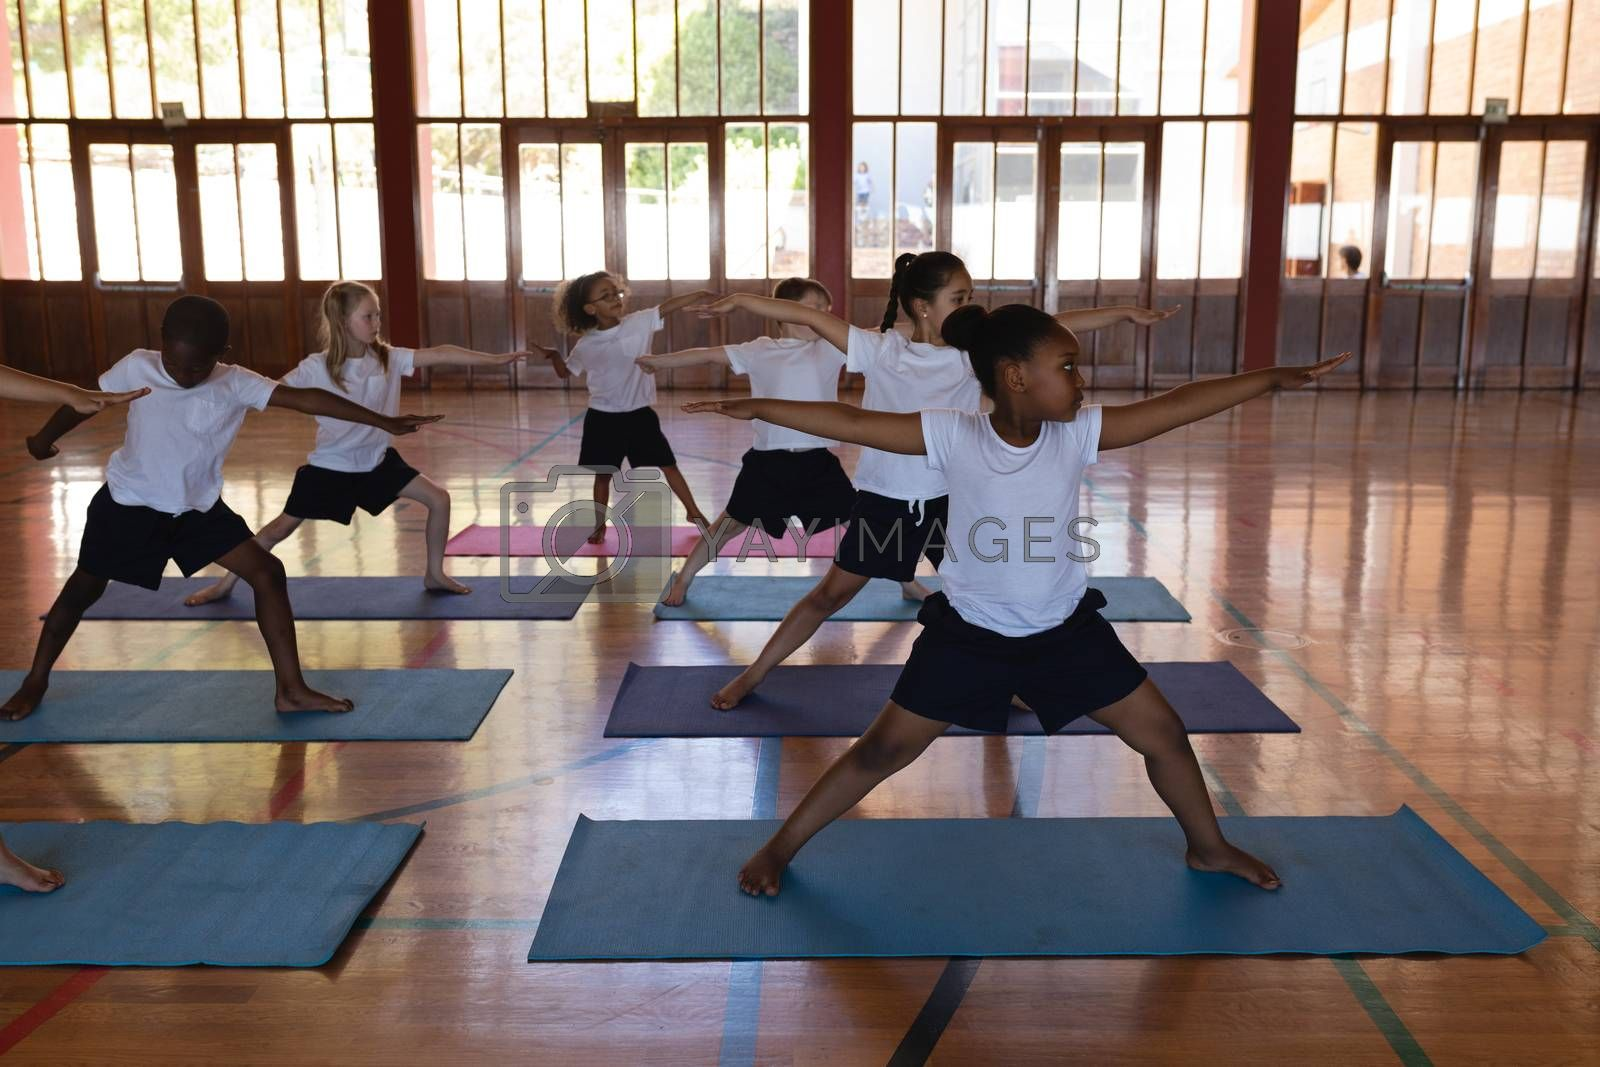 Front view of schoolkids doing yoga on a yoga mat in school gymnast